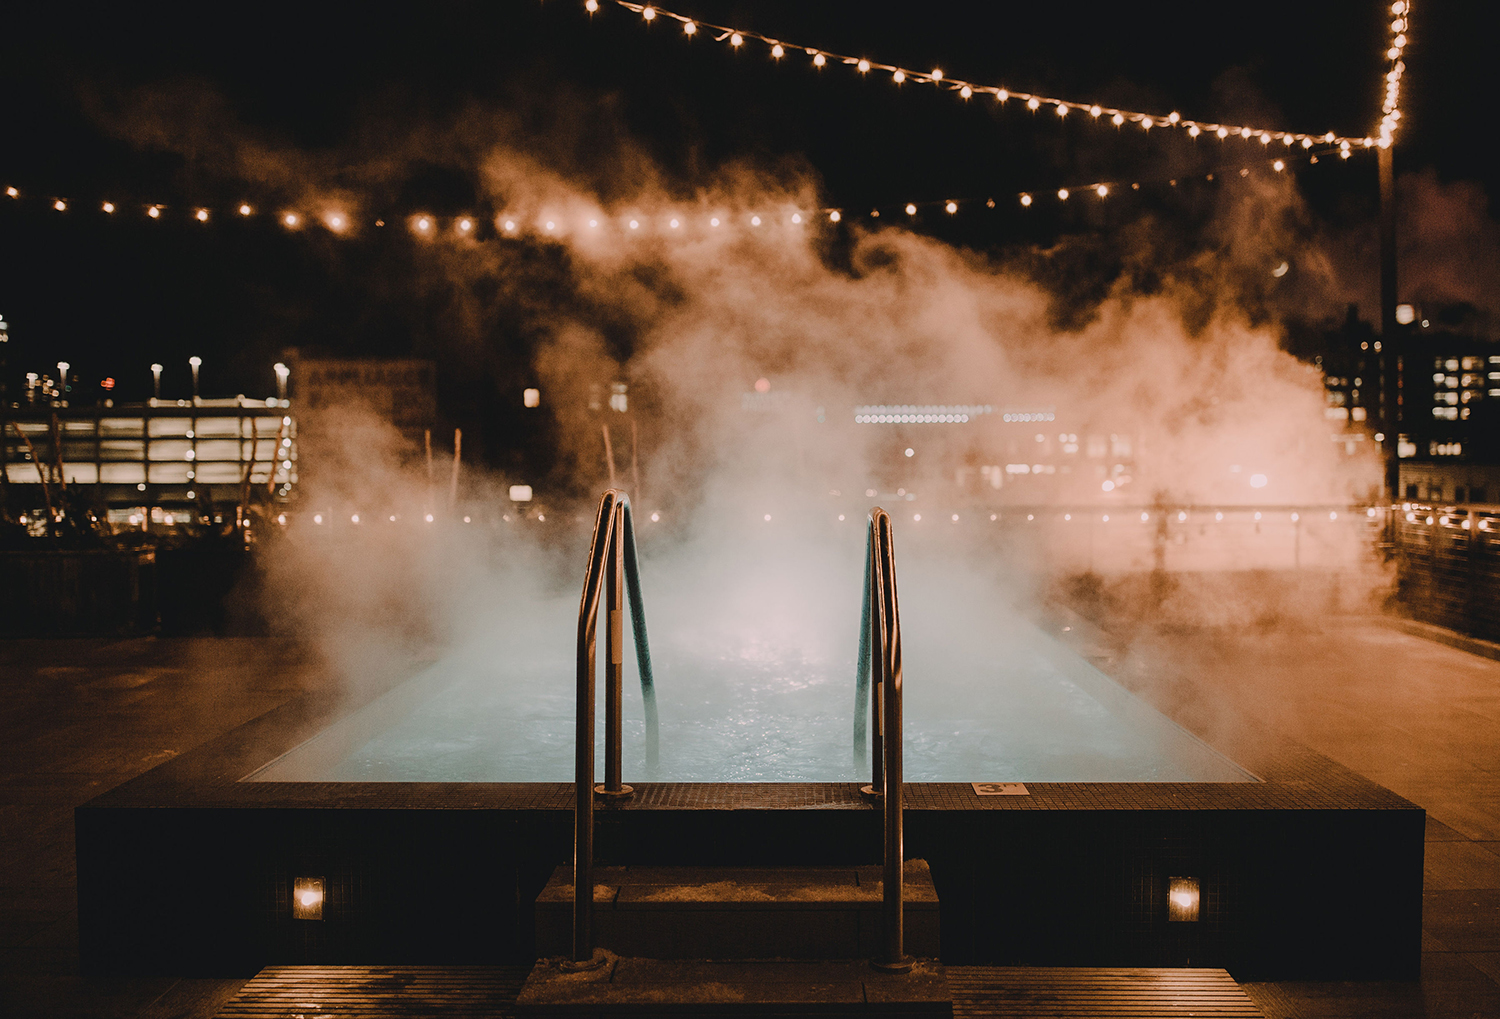 Hewing Hotel has partnered with Stokeyard Outfitters to offer a special celebratory steam every month.